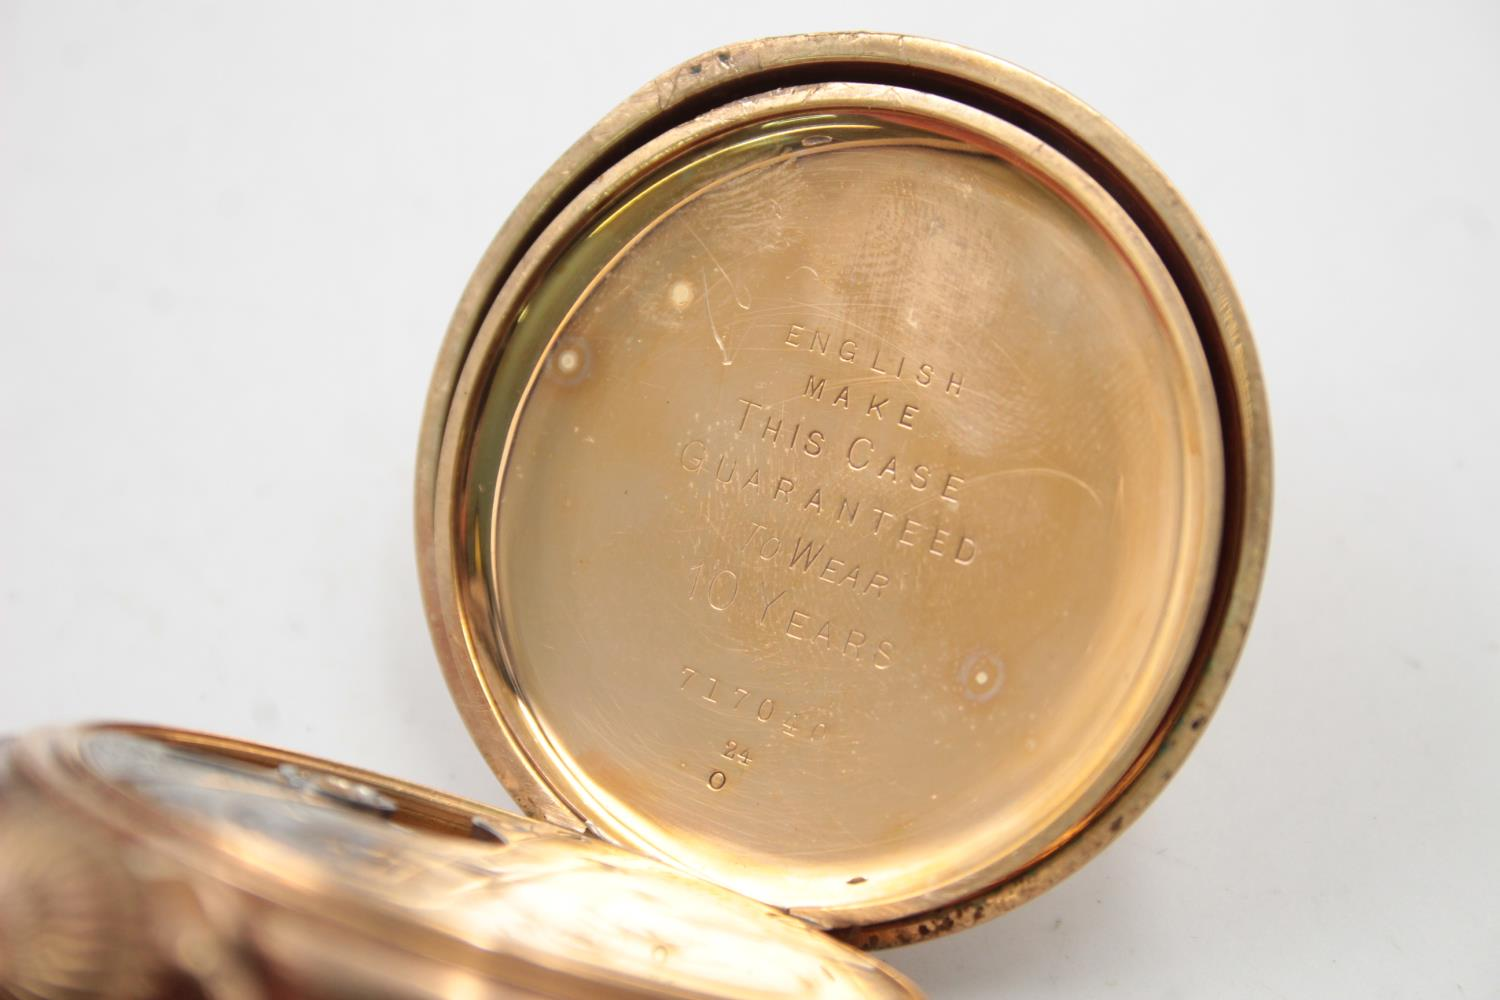 Vintage Gents WALTHAM Rolled Gold Open Face POCKET WATCH Hand-Wind (102g) - Image 5 of 6